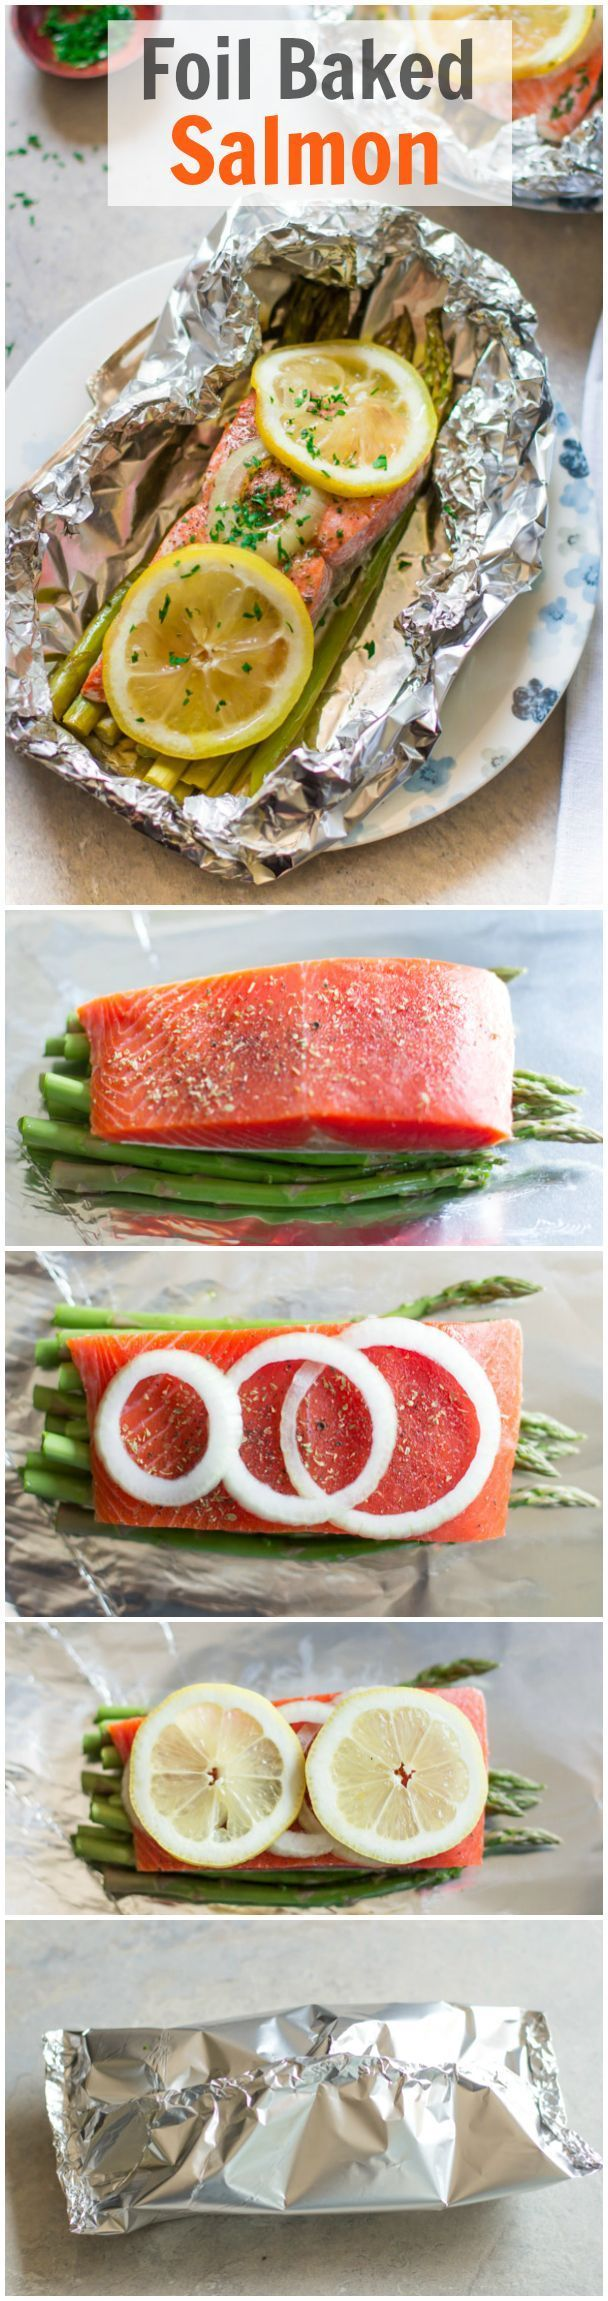 Foil Baked Salmon - Infuse your salmon with lemon, onion, dried oregano and asparagus for a richer flavor. Gluten-free, paleo, and low-carb!